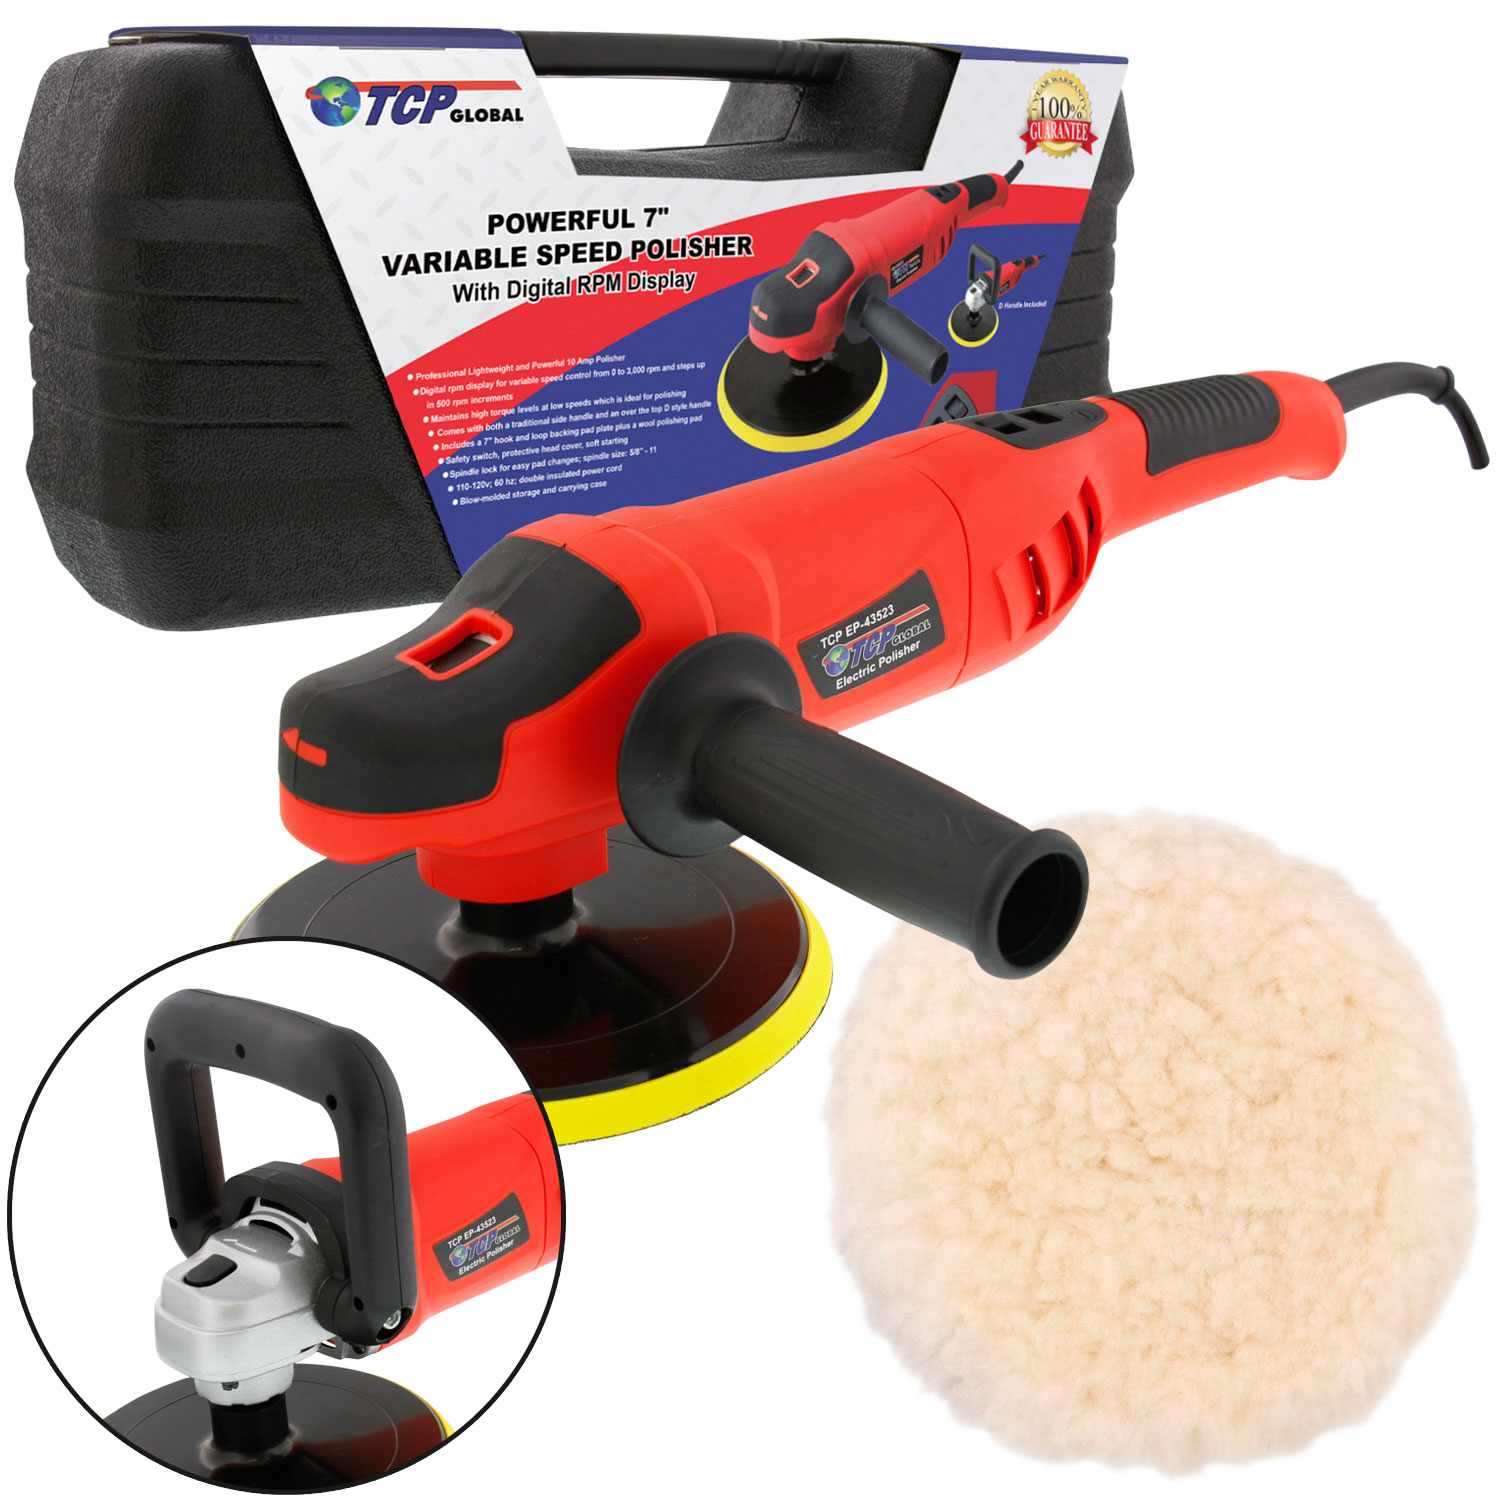 "7"" Variable Speed Polisher with Digital RPM Display; High Performance Polisher with a... by TCP Global Corp"